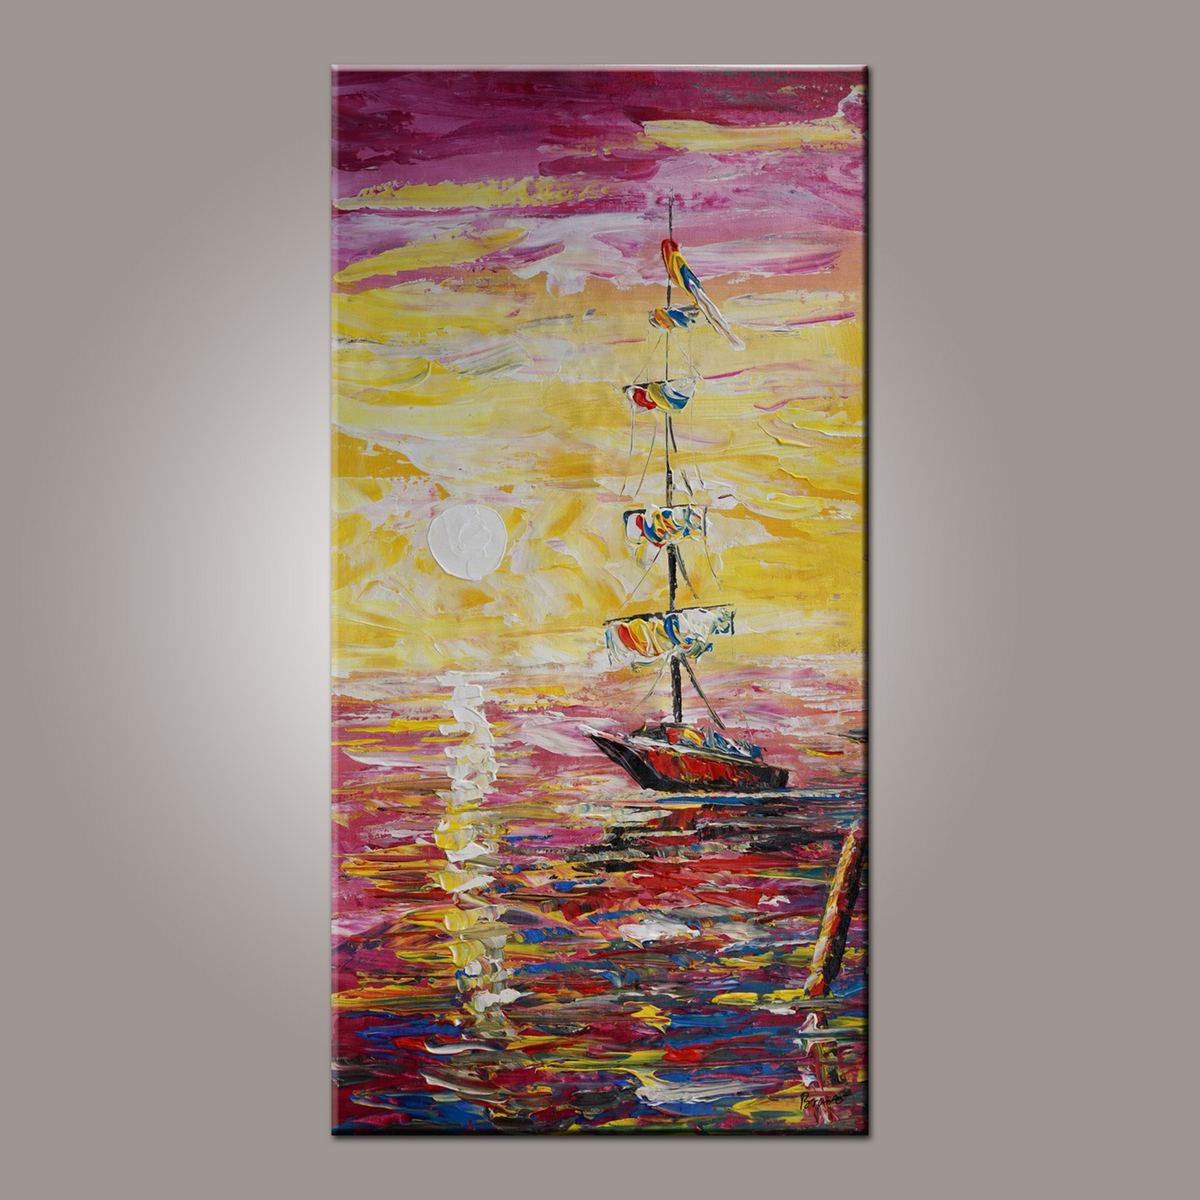 Wall Art, Boat Painting, Contemporary Art, Art on Canvas, Art Painting, Abstract Art, Living Room Wall Art, Canvas Art, Art for Sale